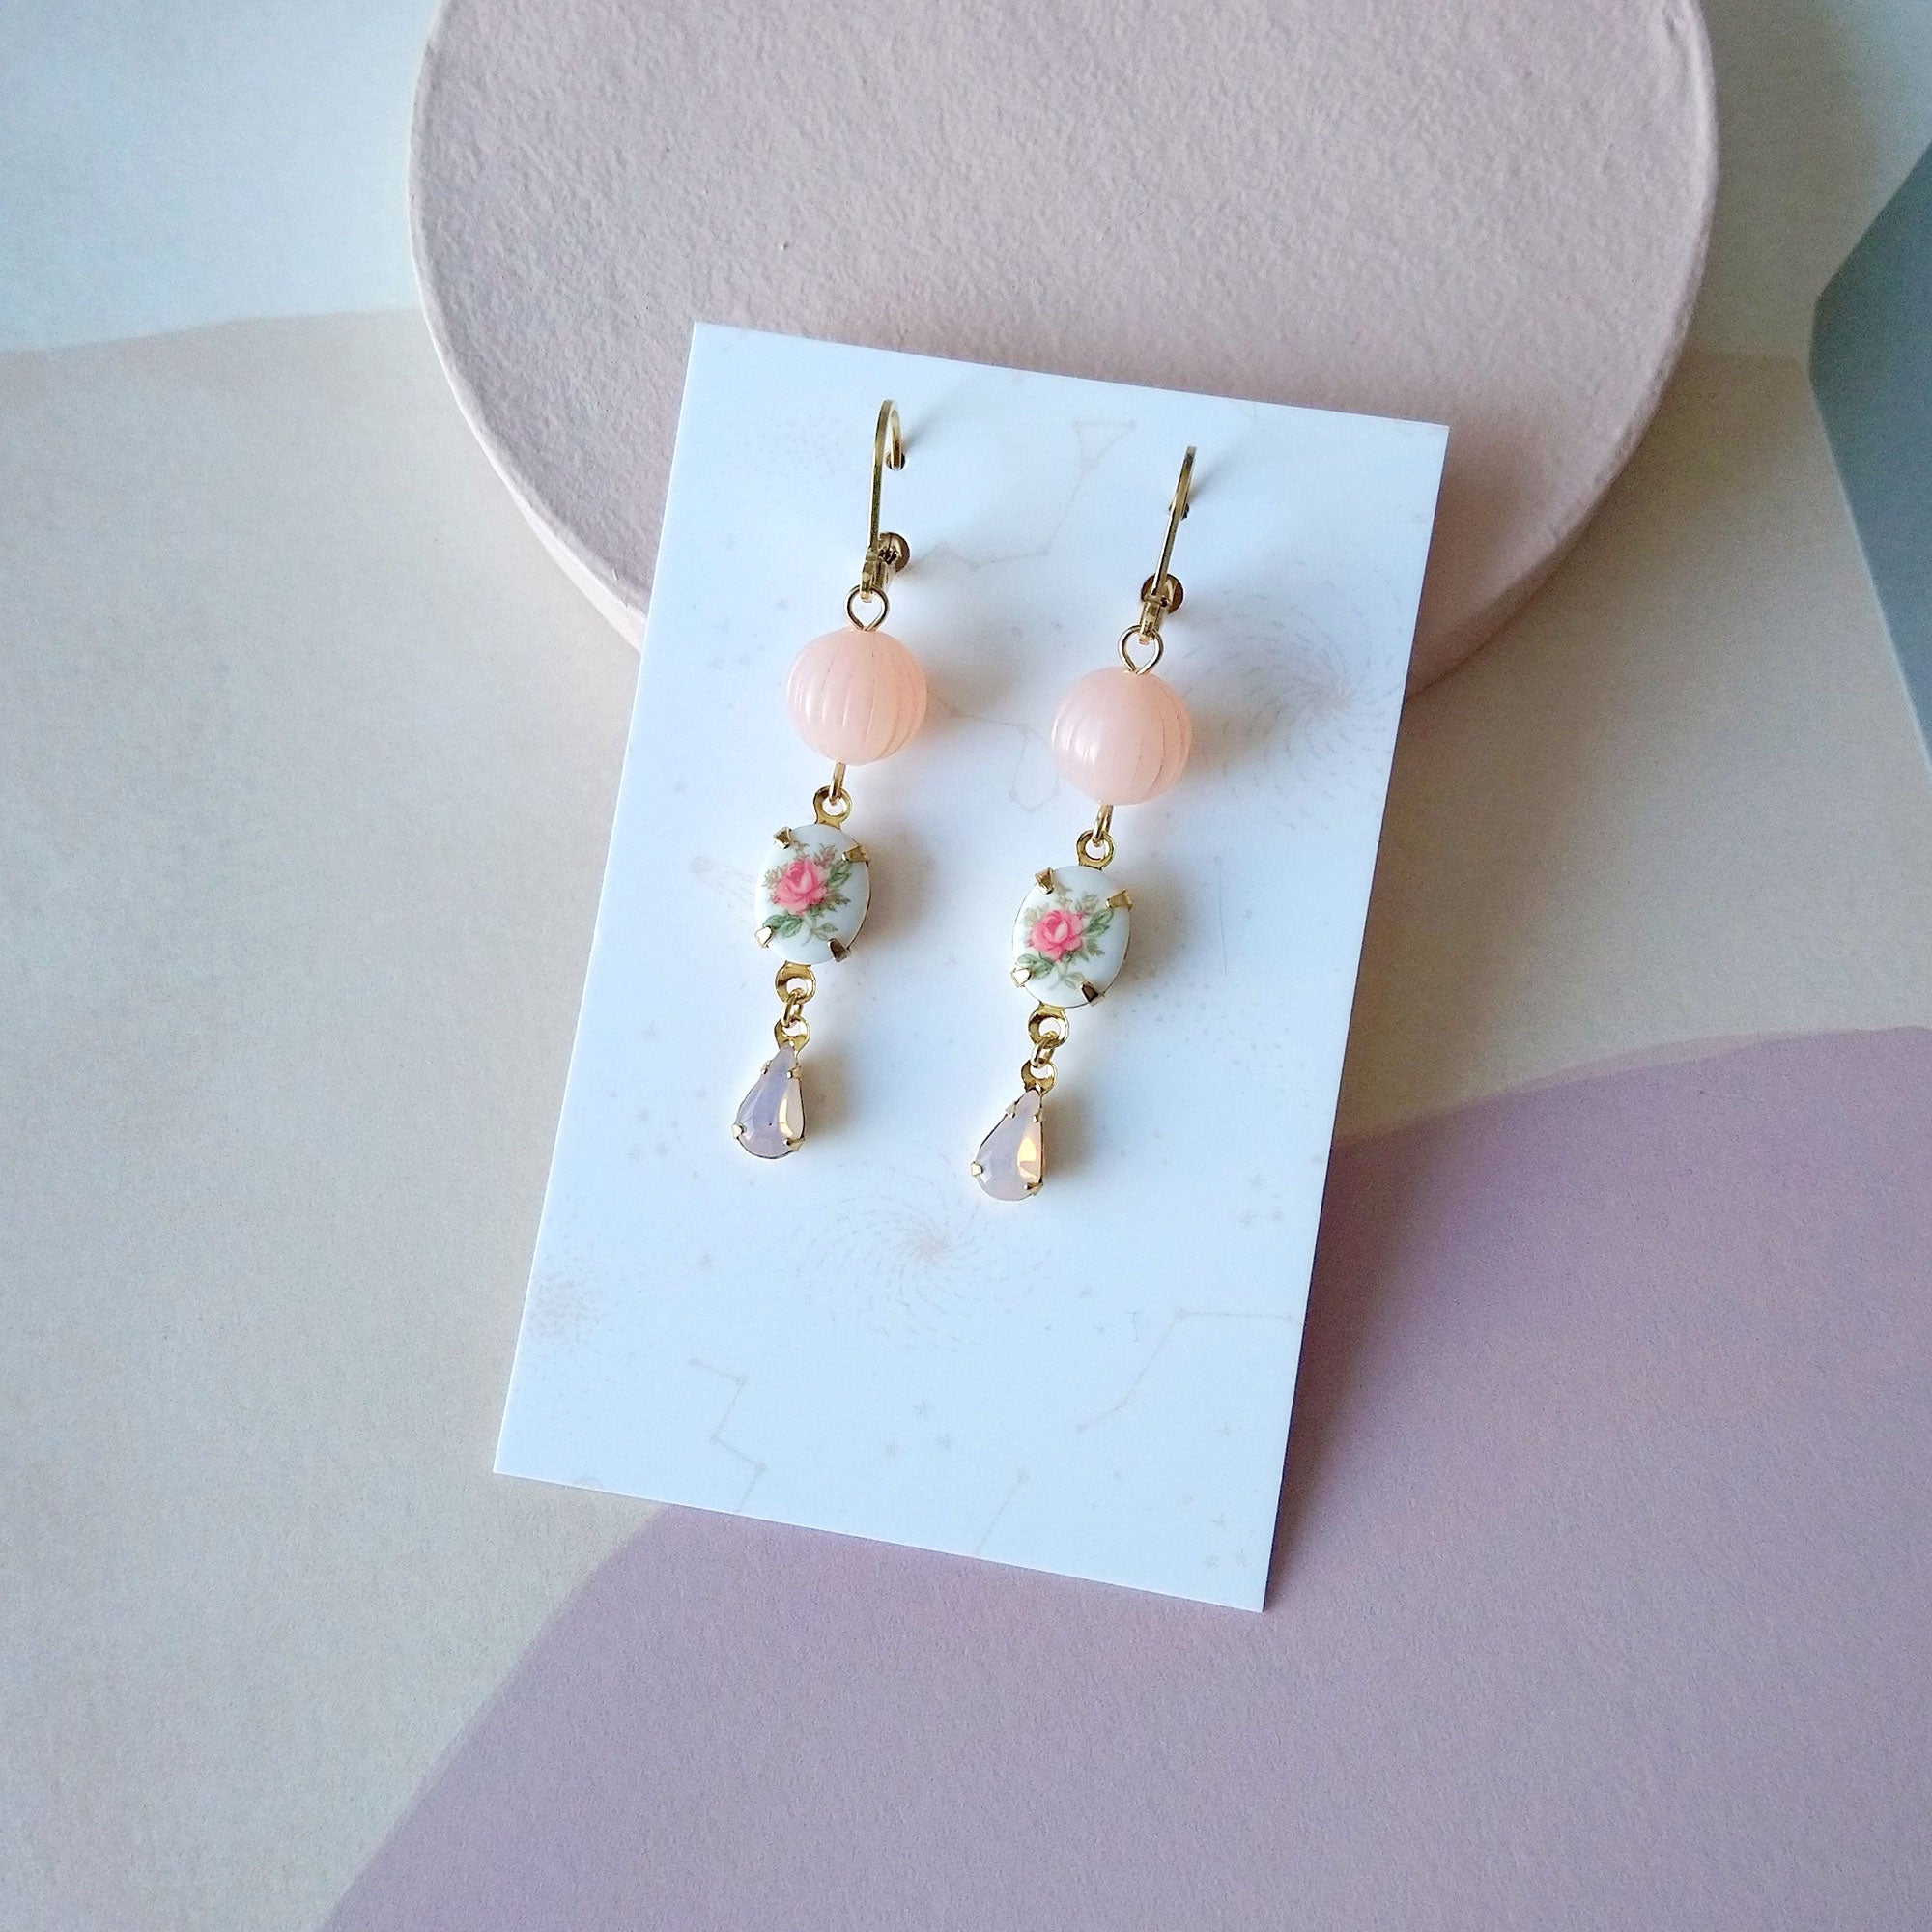 canadian made jewelry drop earrings